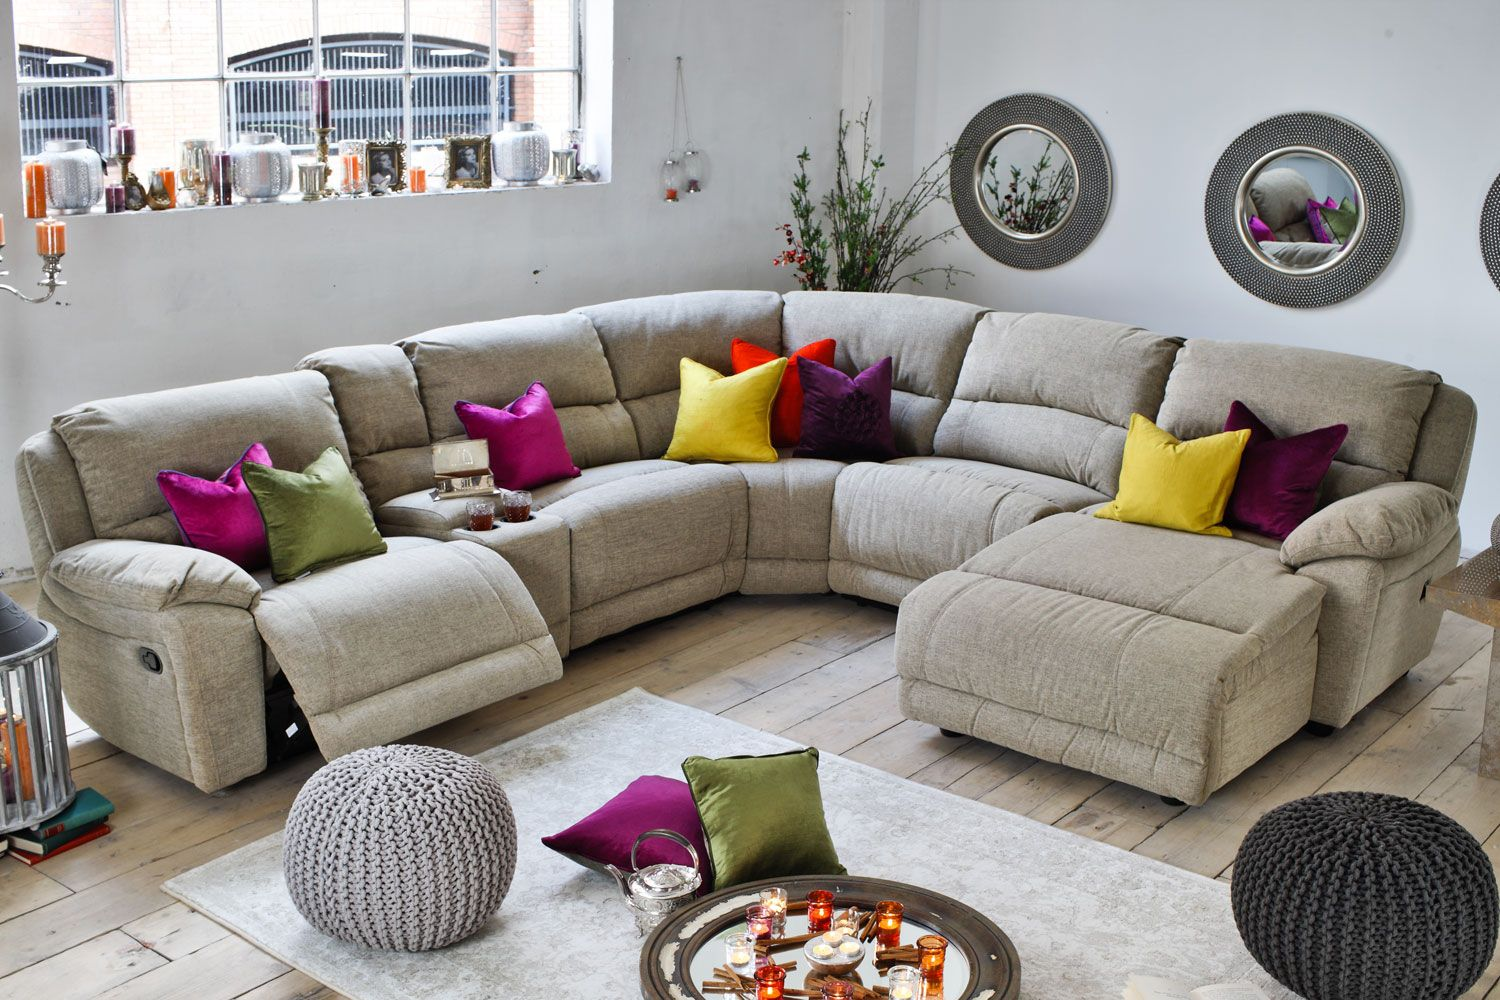 Sale On Sofas 8 Types Of Corner Sofas To Save Your Living Room Space Sofa